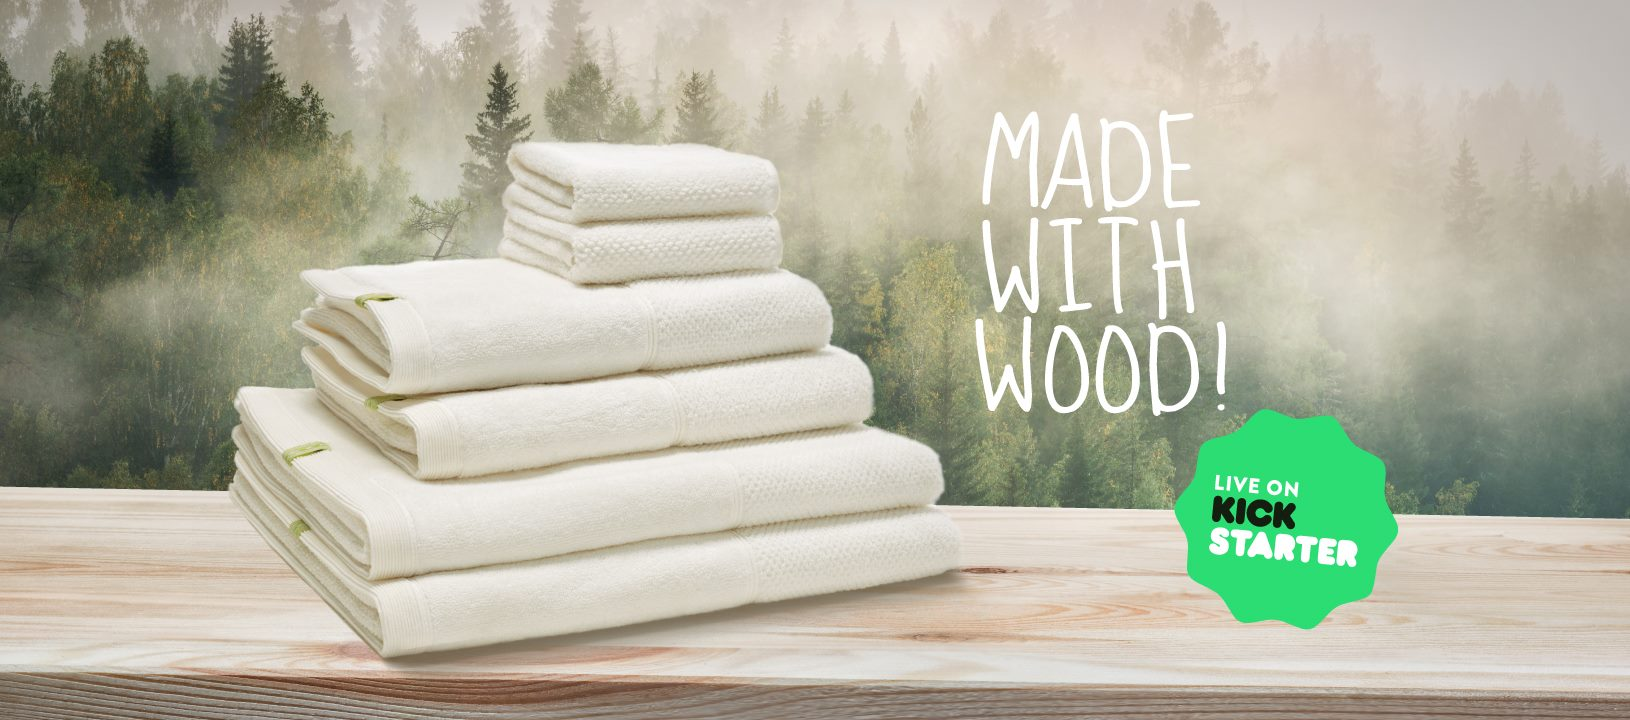 Kushel - The Towel Made with Wood, 19€ & up @kickstarter.com